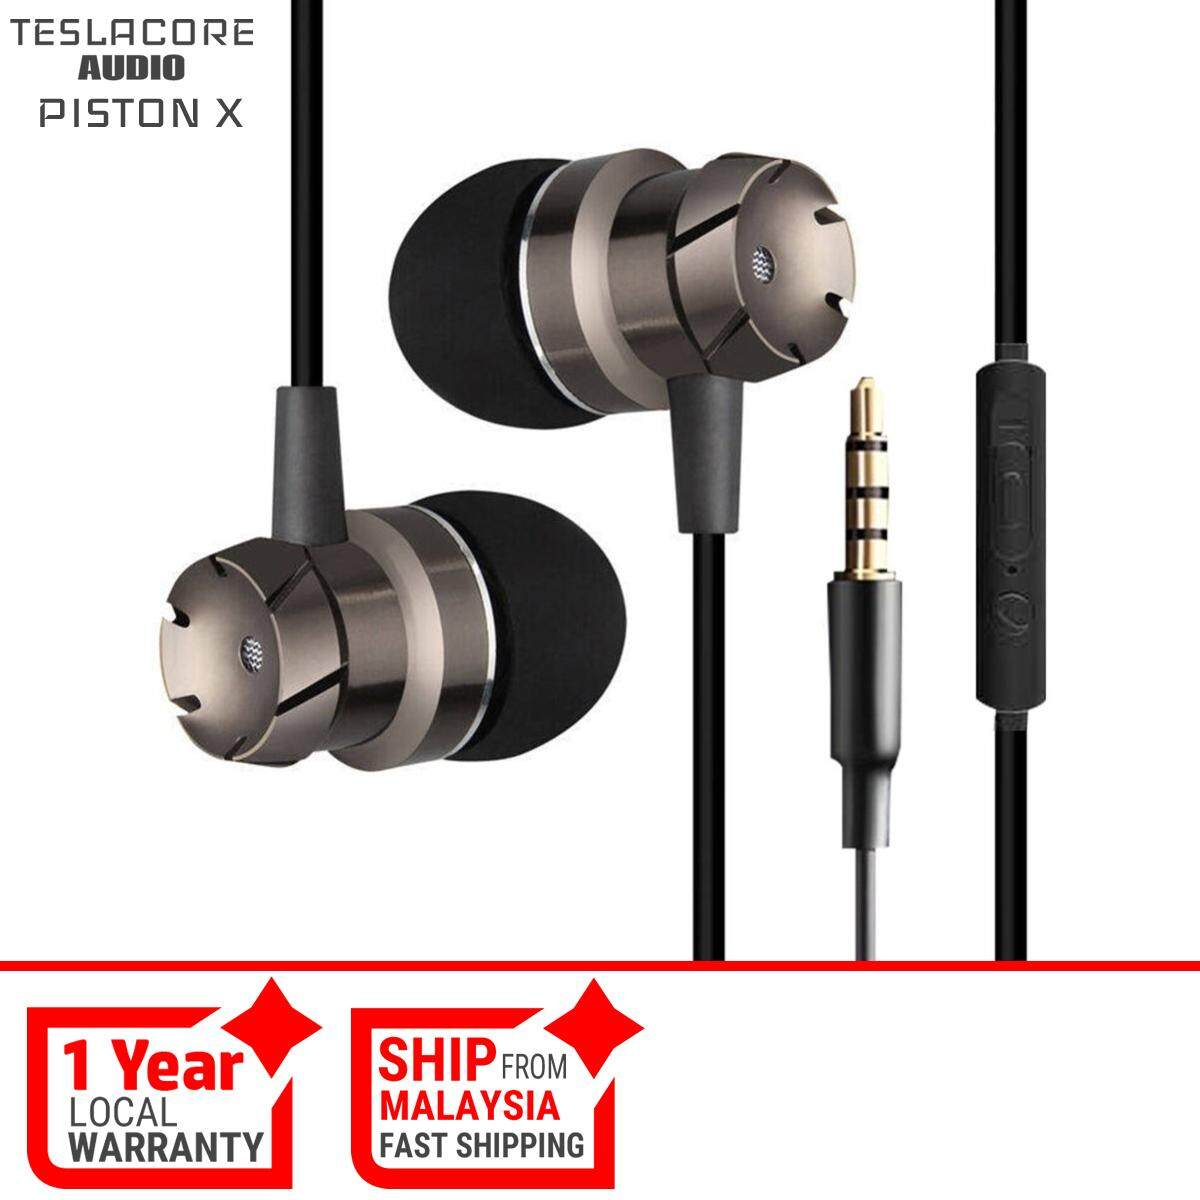 Headphones Headsets Buy At Best Price In Wiring Outdoor Speakers With Volume Control Piston Chrome Bullet Ear Earphone Stereo Bass Sound Noise Isolating Mic For Phone